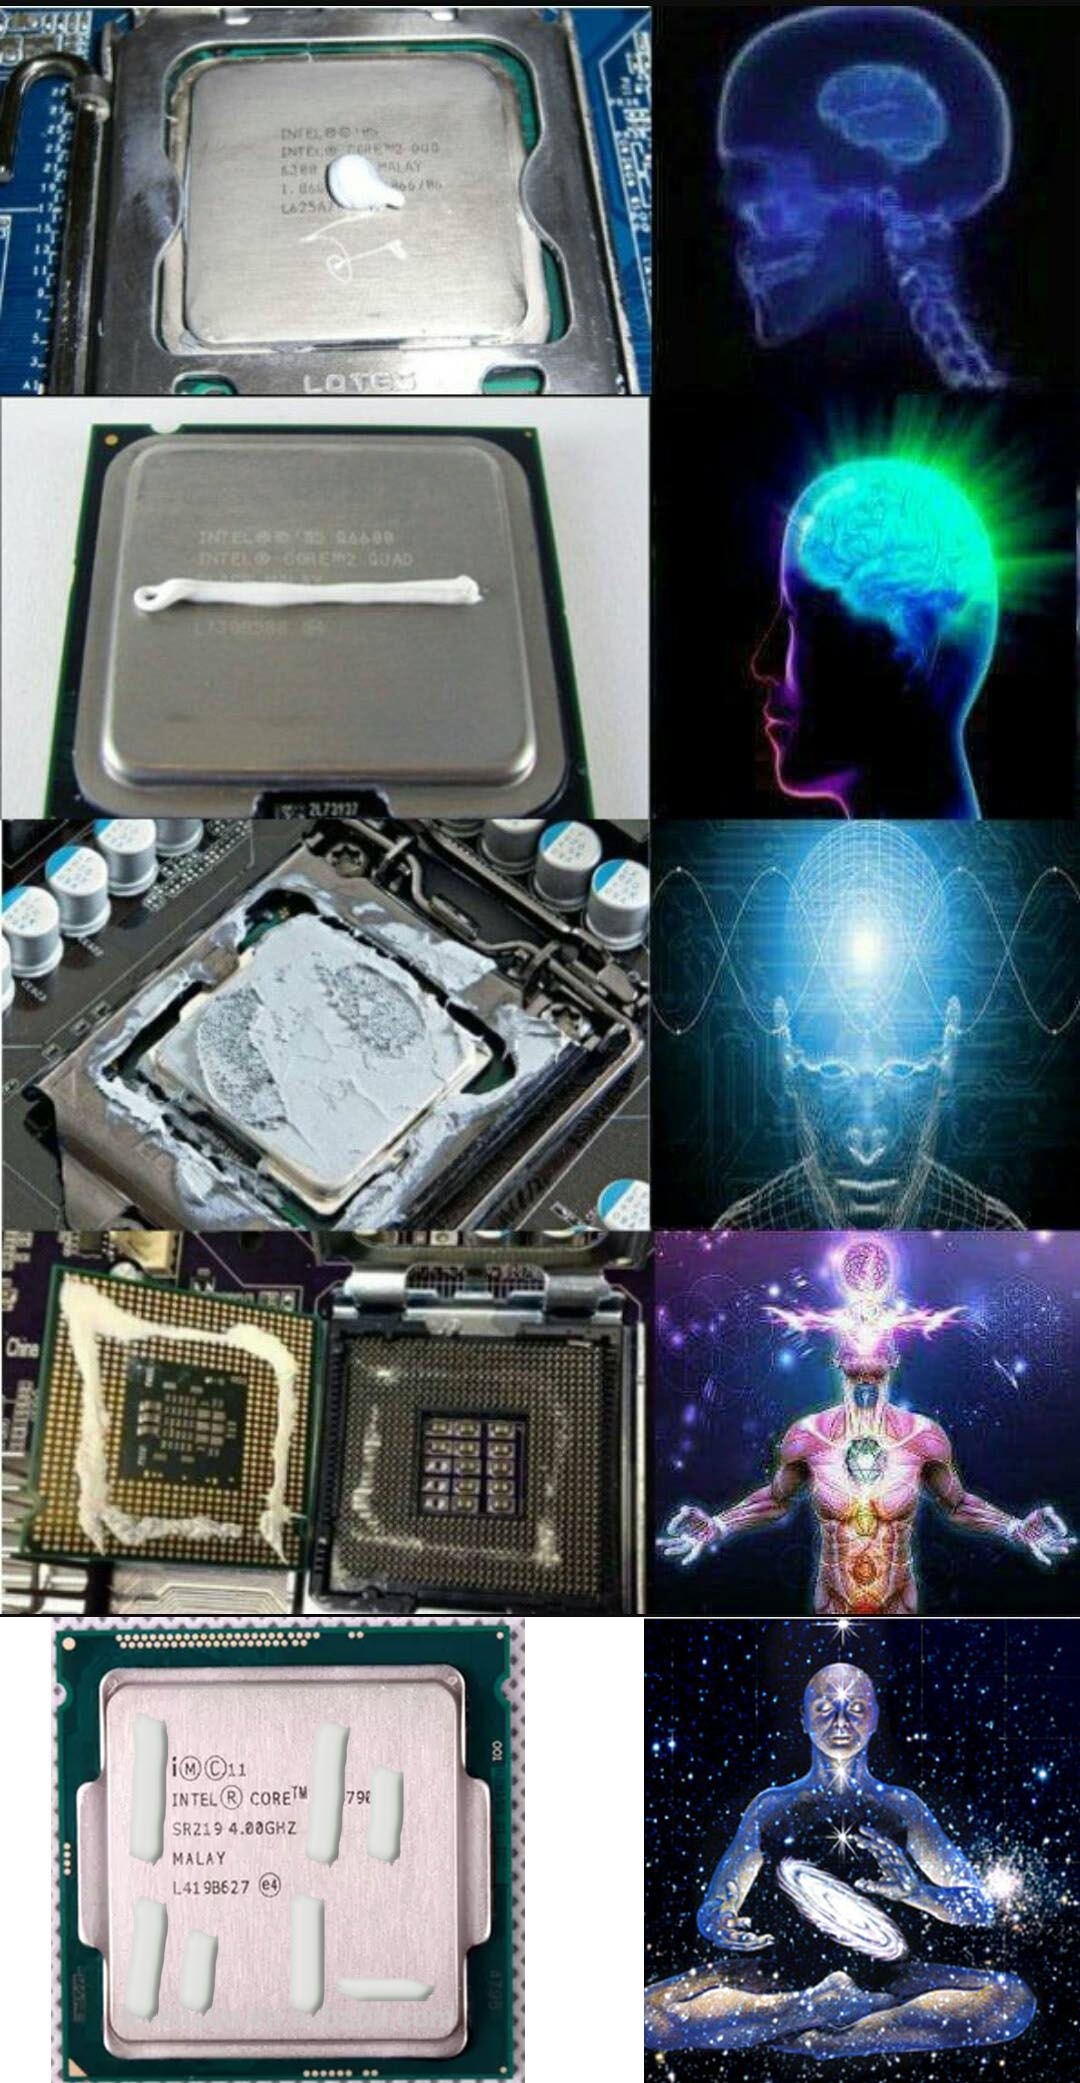 Overheated CPU will cause loss of performance